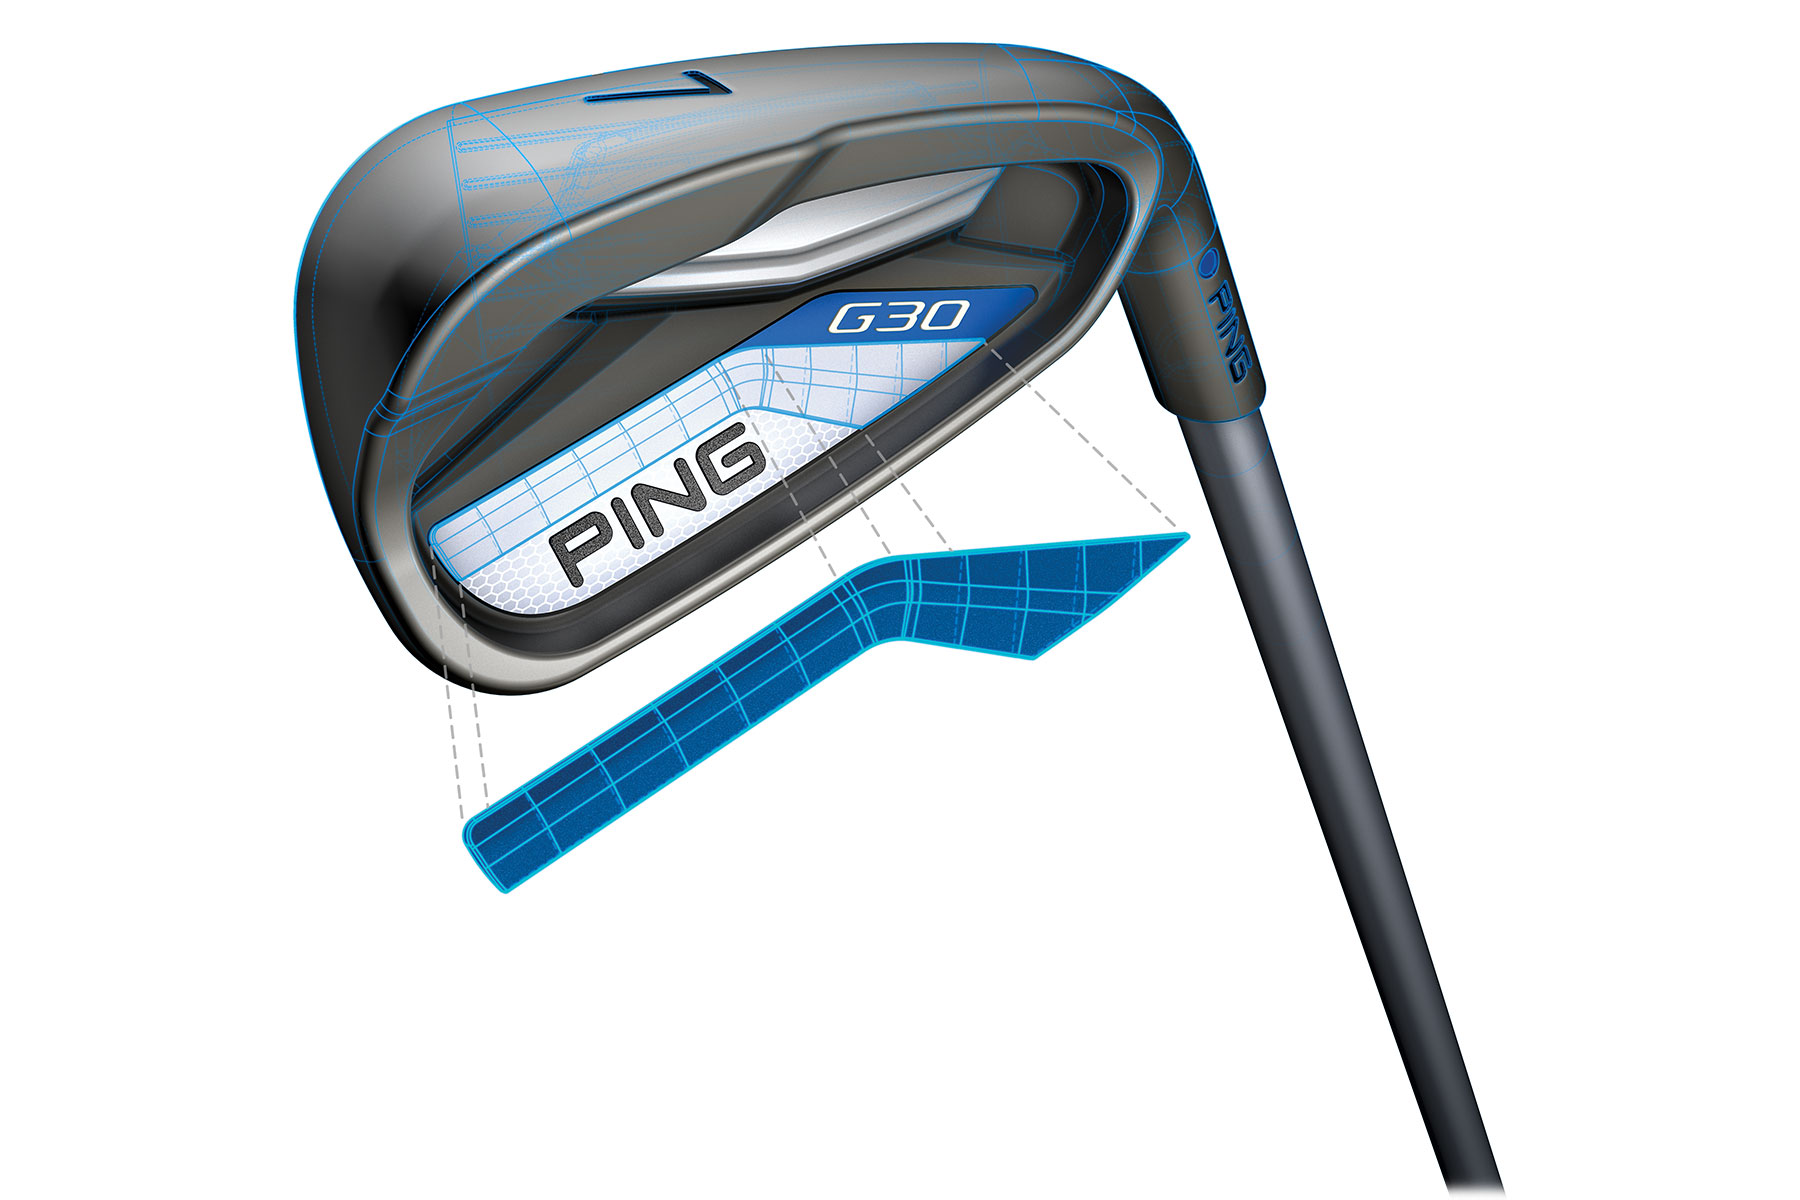 ping g30 irons steel 5 sw online golf. Black Bedroom Furniture Sets. Home Design Ideas